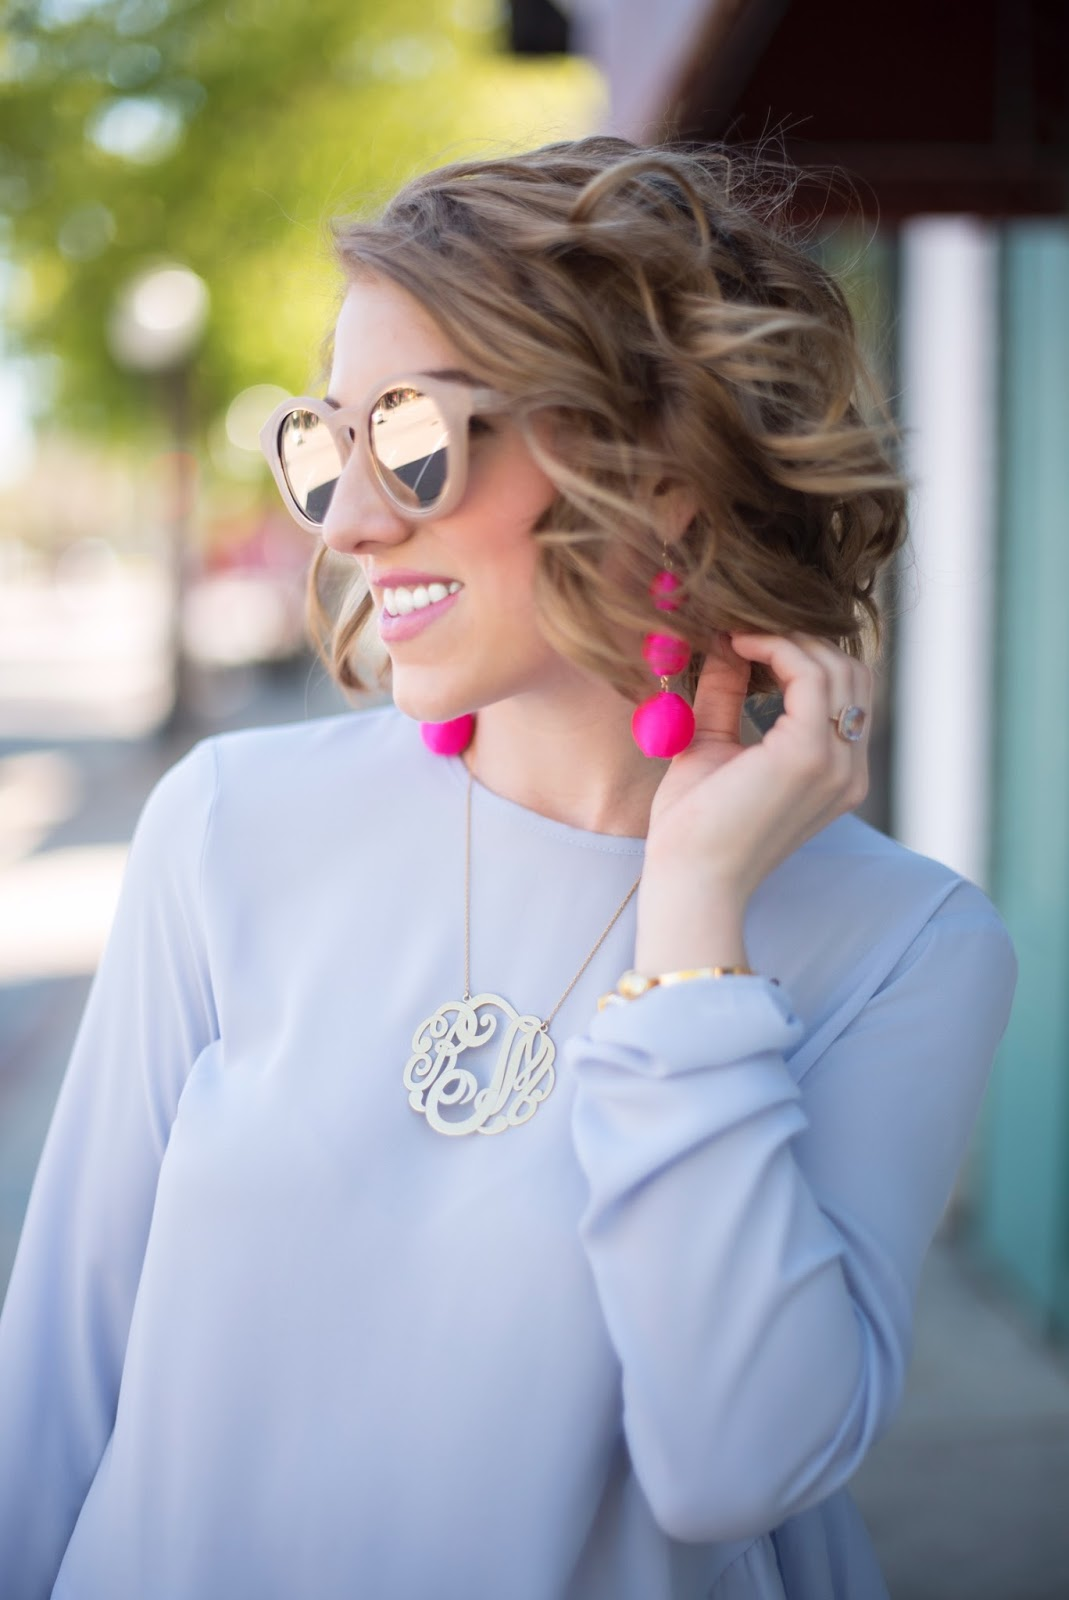 Pink Statement Earrings - Click through to see more on Something Delightful Blog